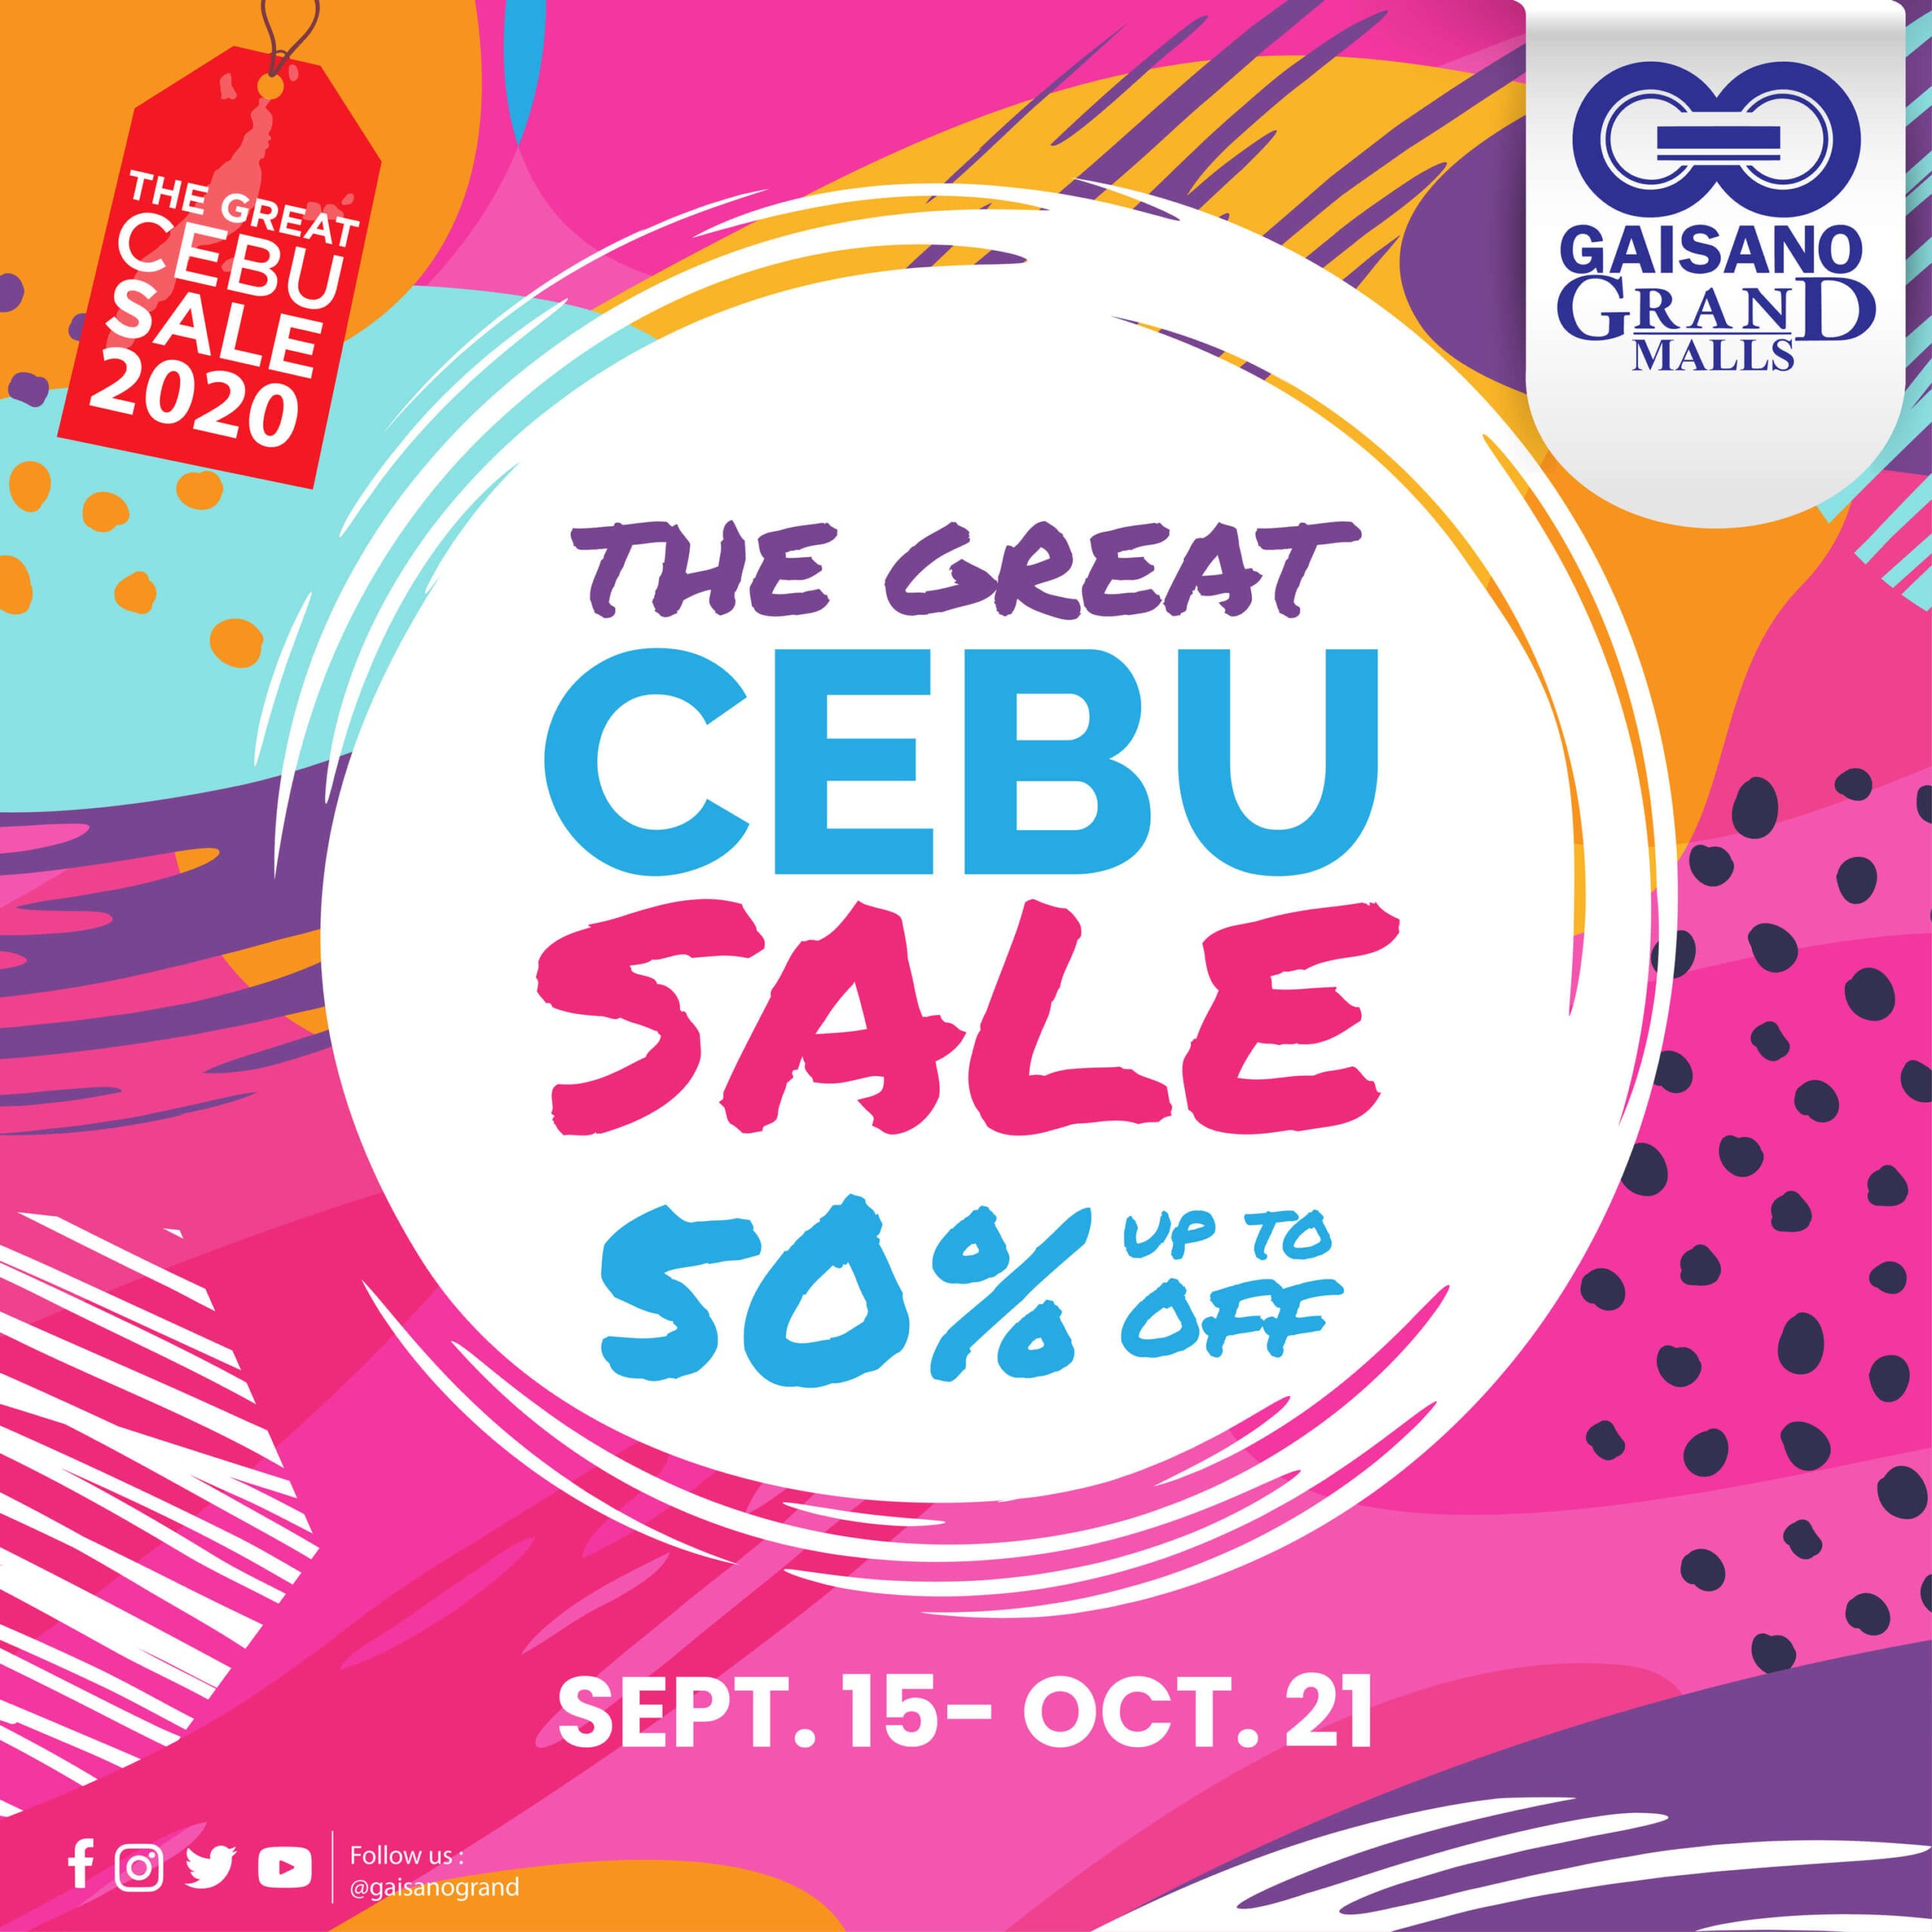 Gaisano Grand offers up to 50% off